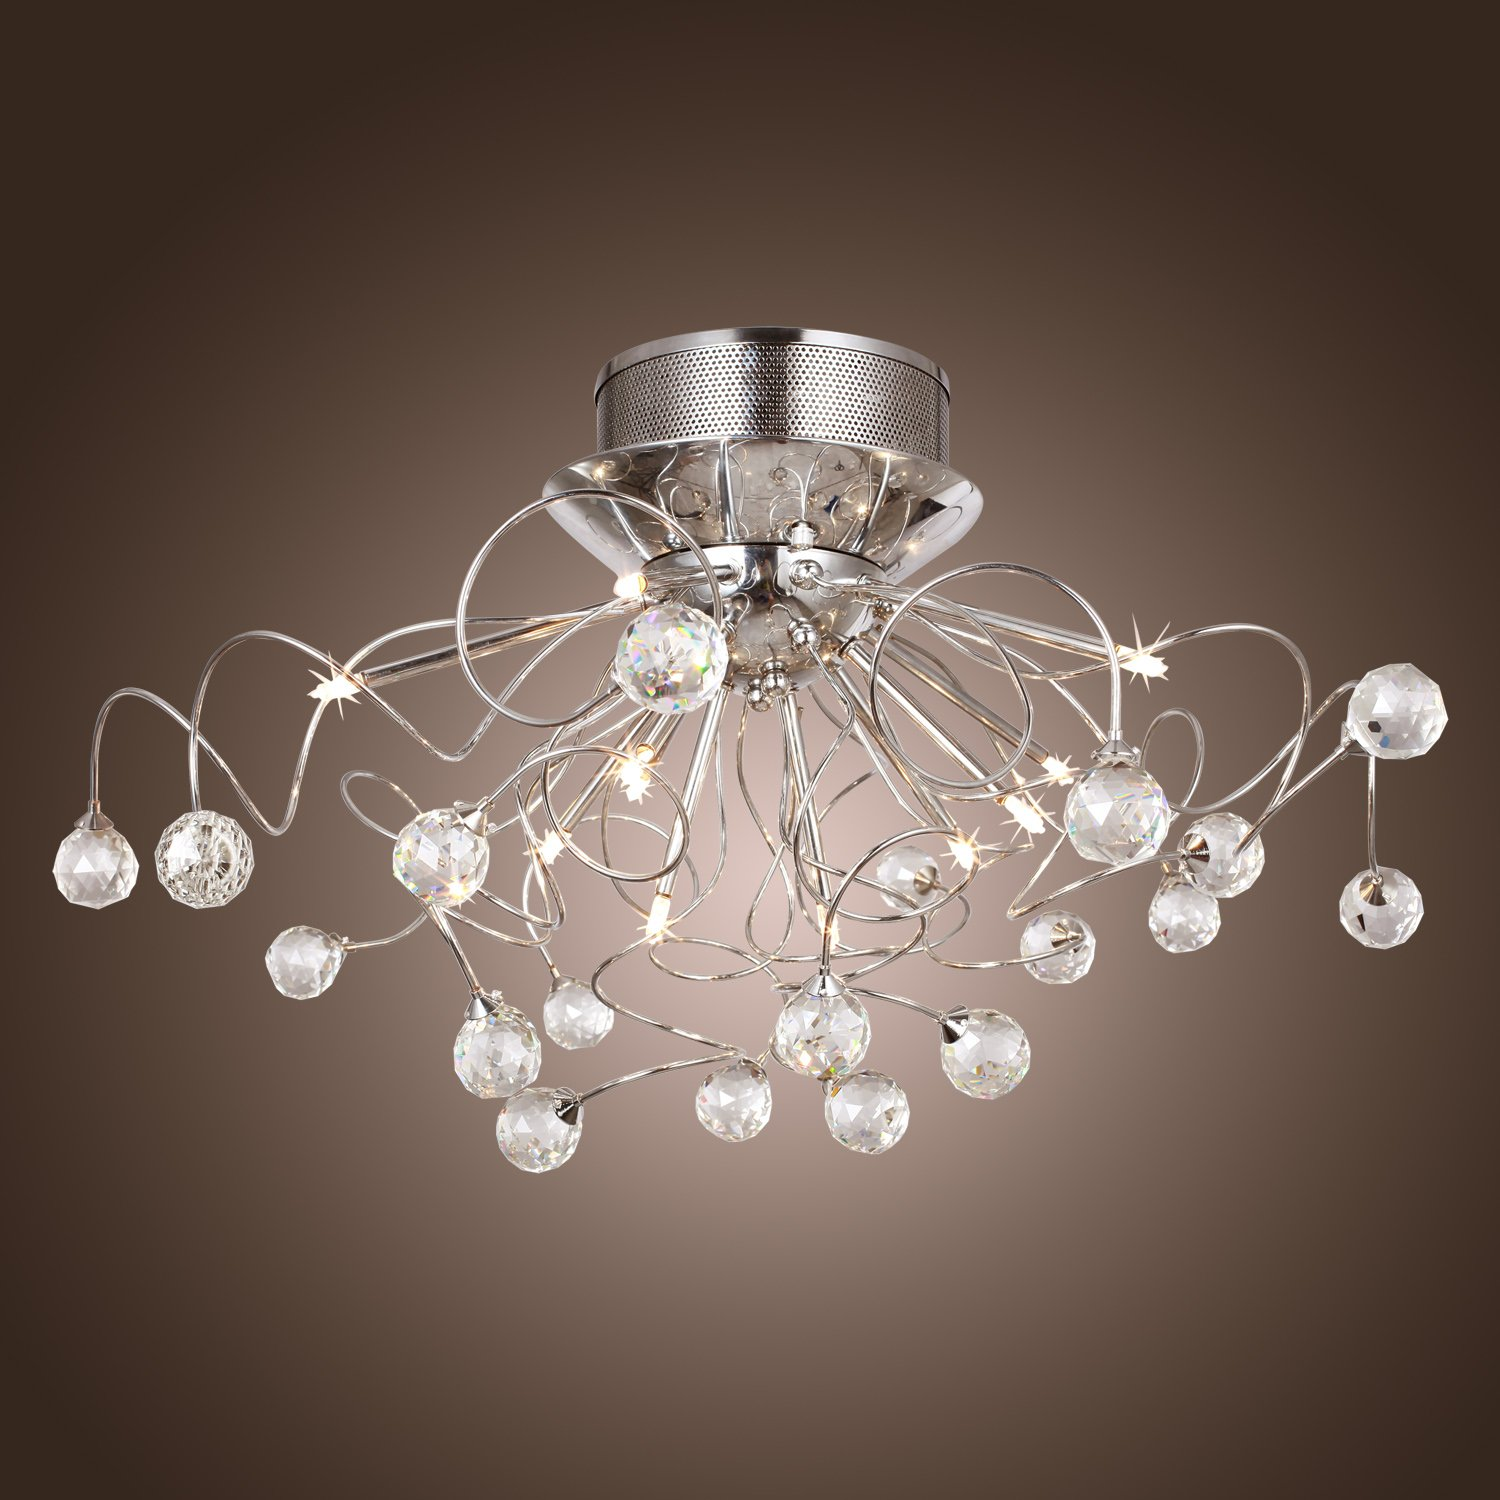 Discount Designer Lighting Fixtures